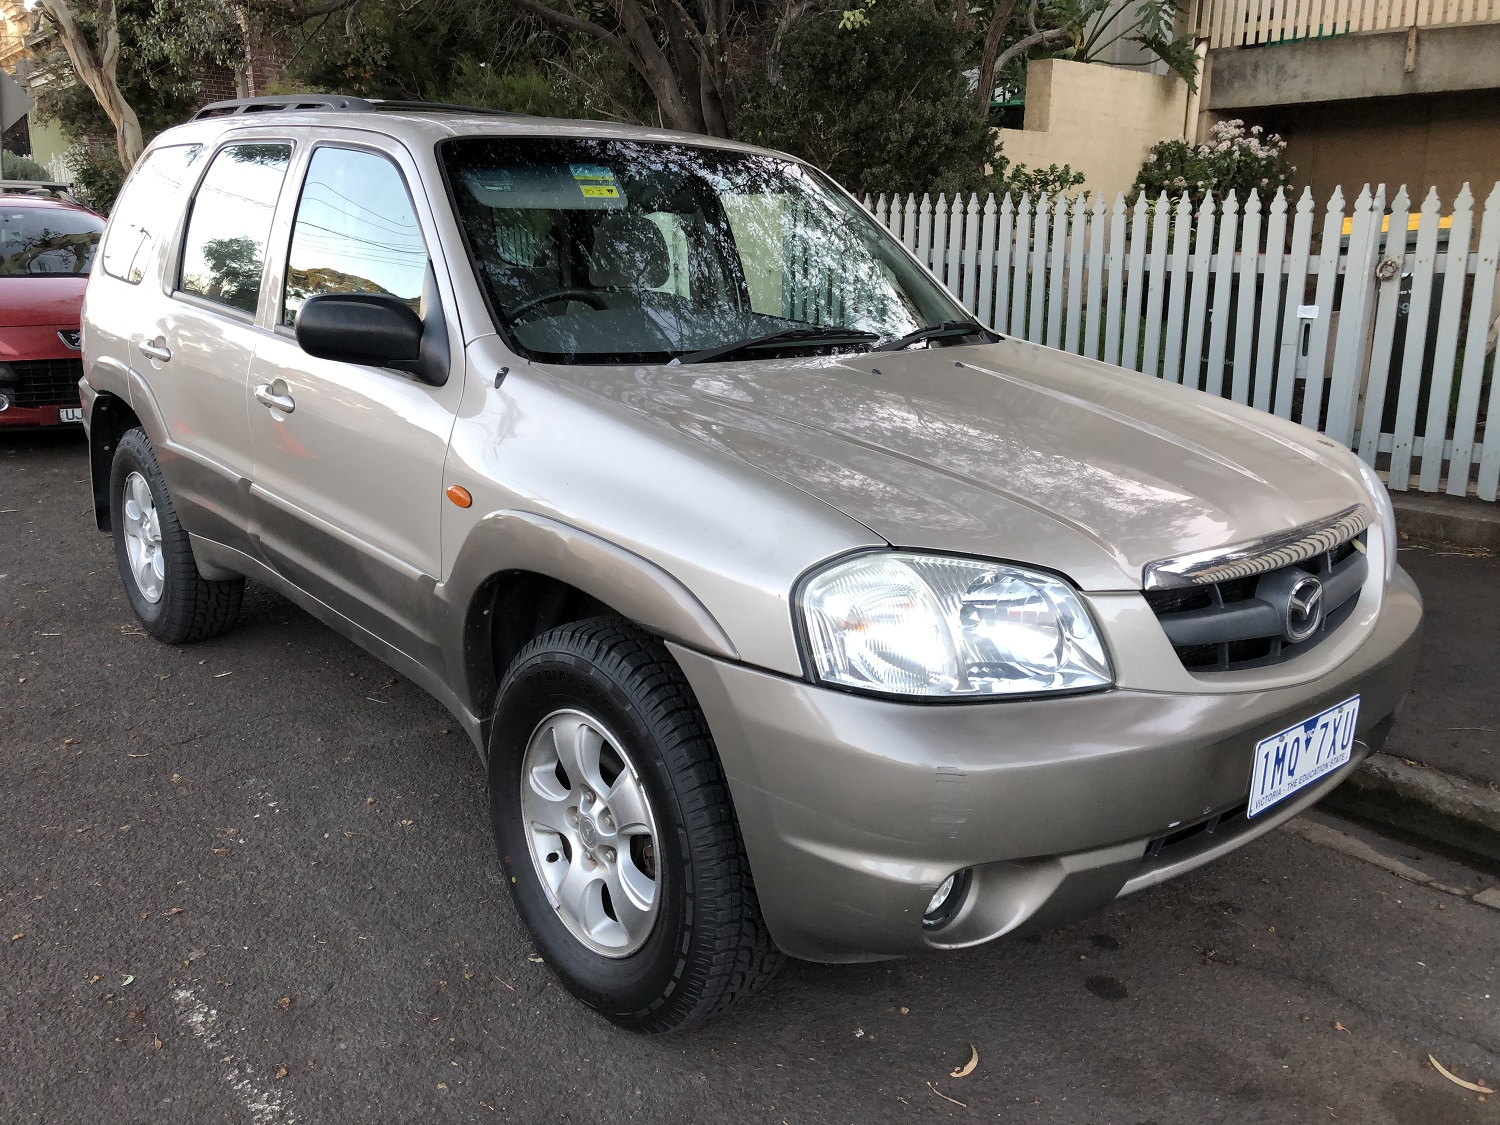 Picture of Marienne's 2001 Mazda Tribute